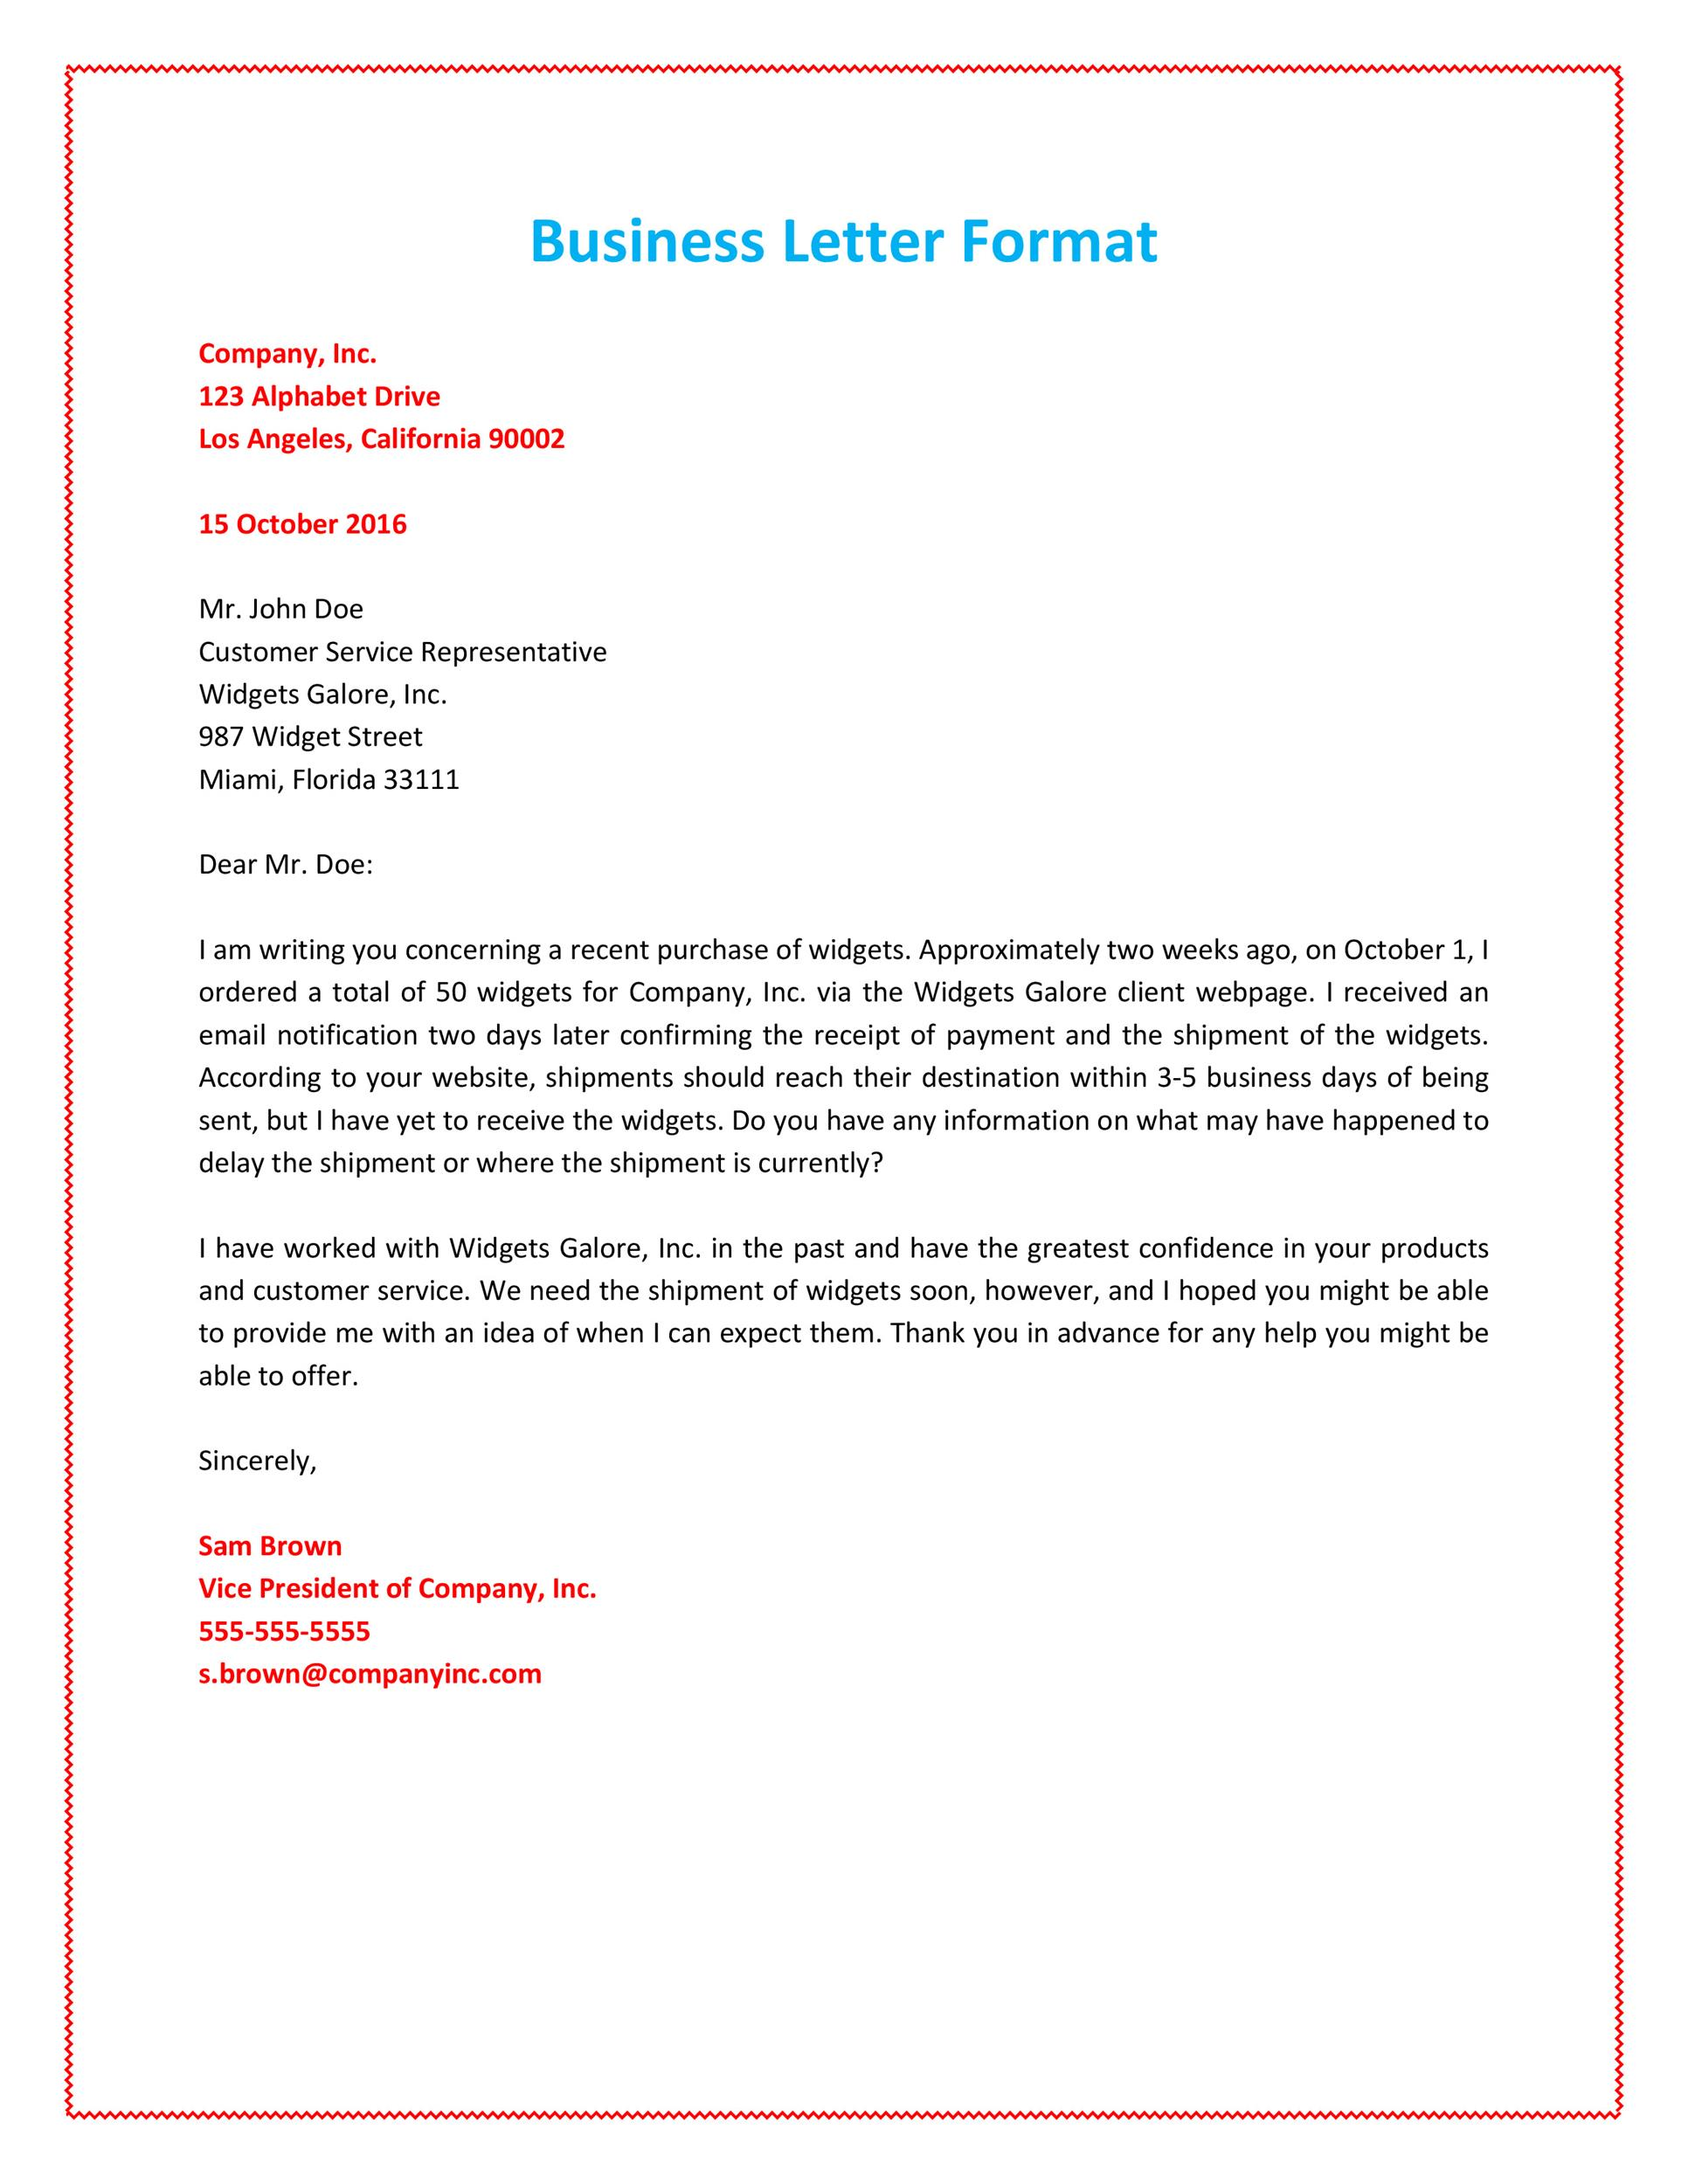 Bussiness letter format jcmanagement 35 formal business letter format templates examples template lab spiritdancerdesigns